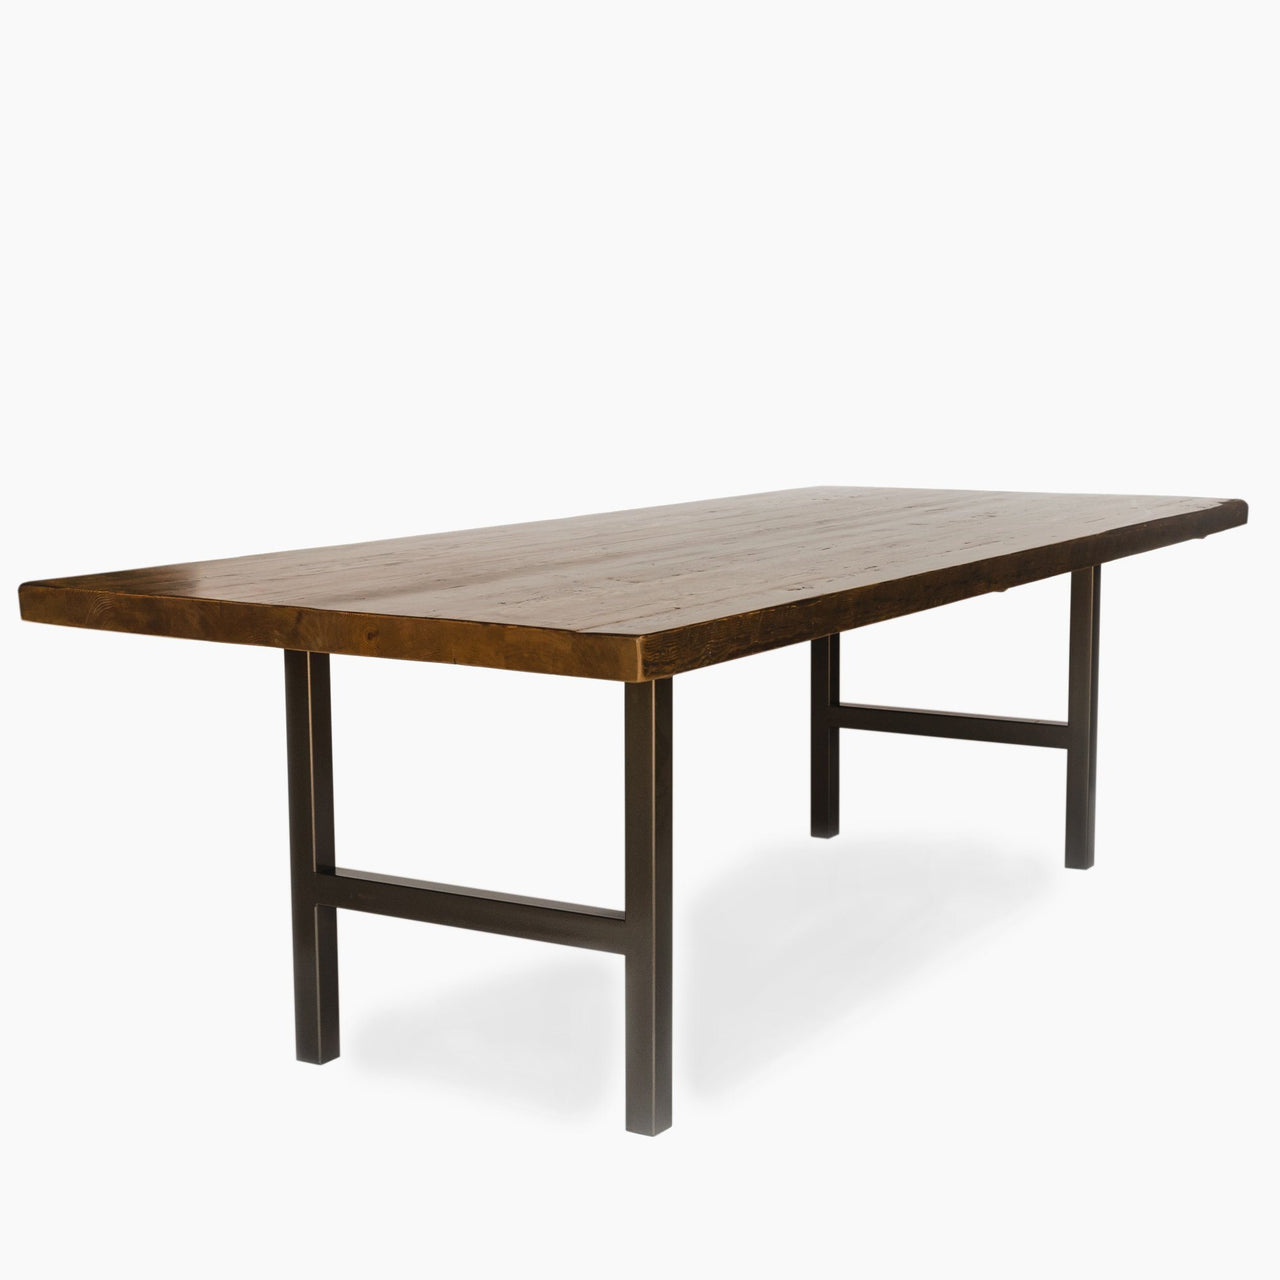 Urban Wood & Steel Dining Table with Narrow Base Style